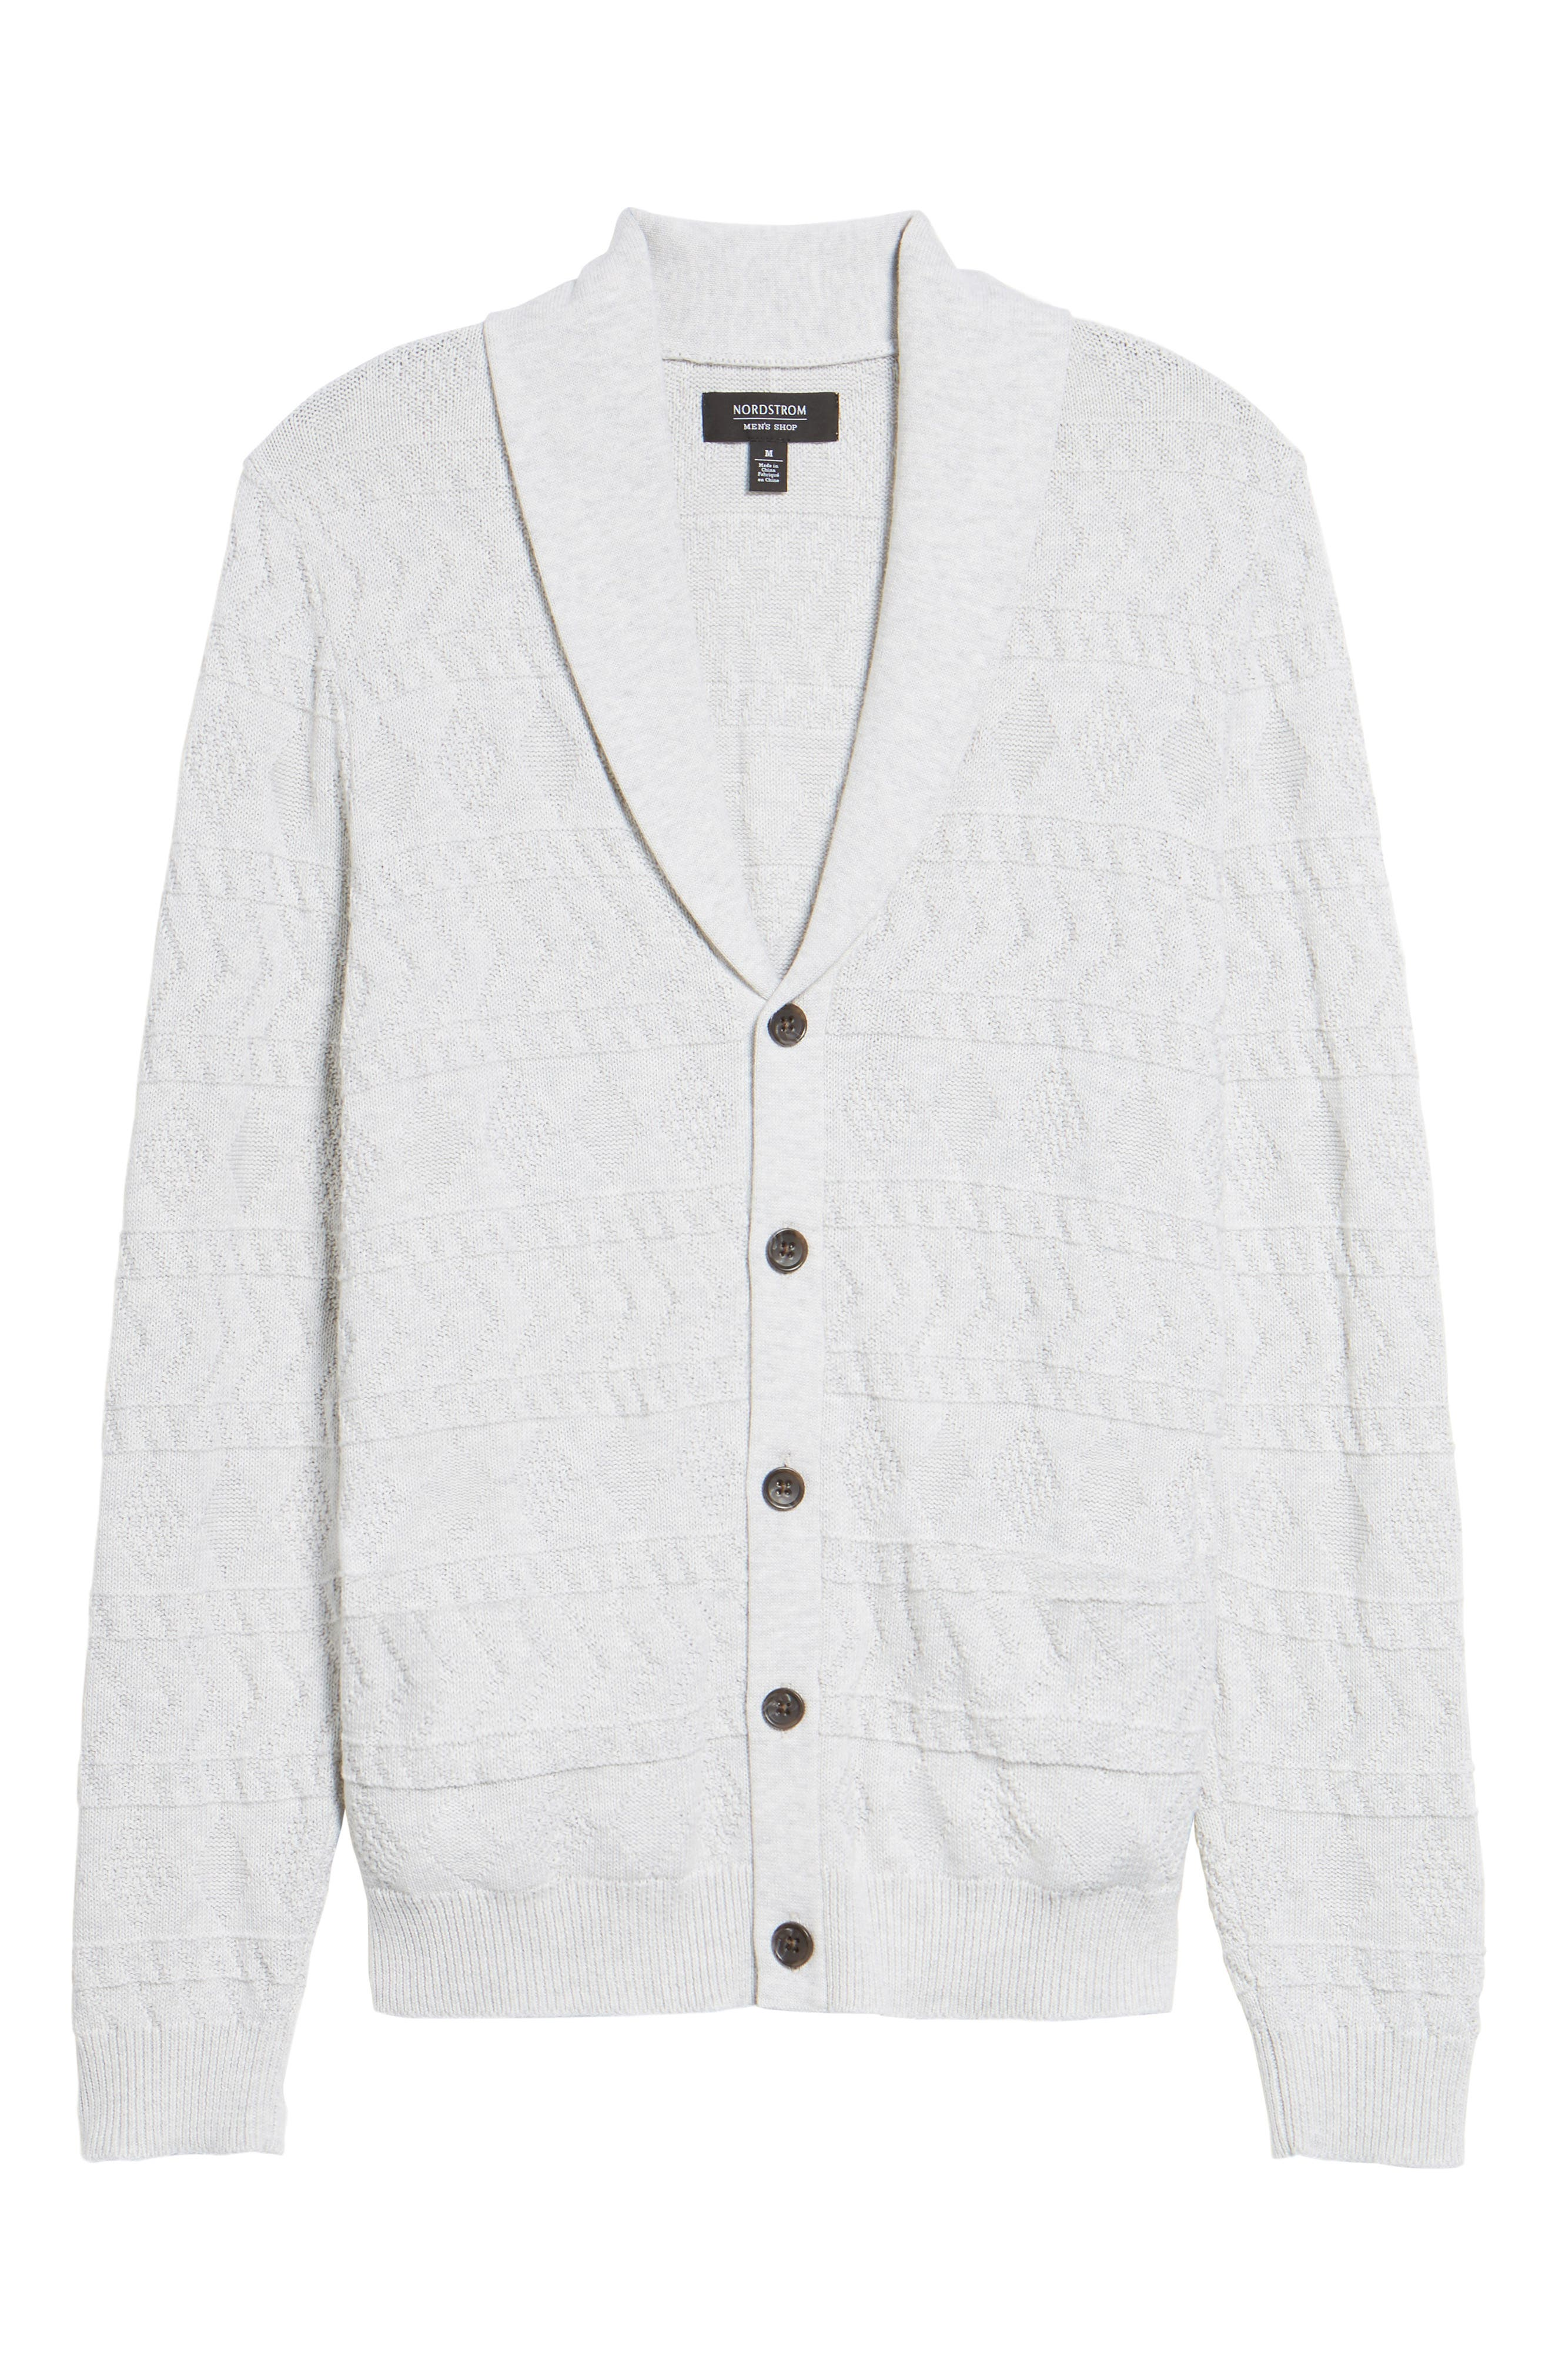 Cotton Cardigan,                             Alternate thumbnail 6, color,                             Grey Micro Heather